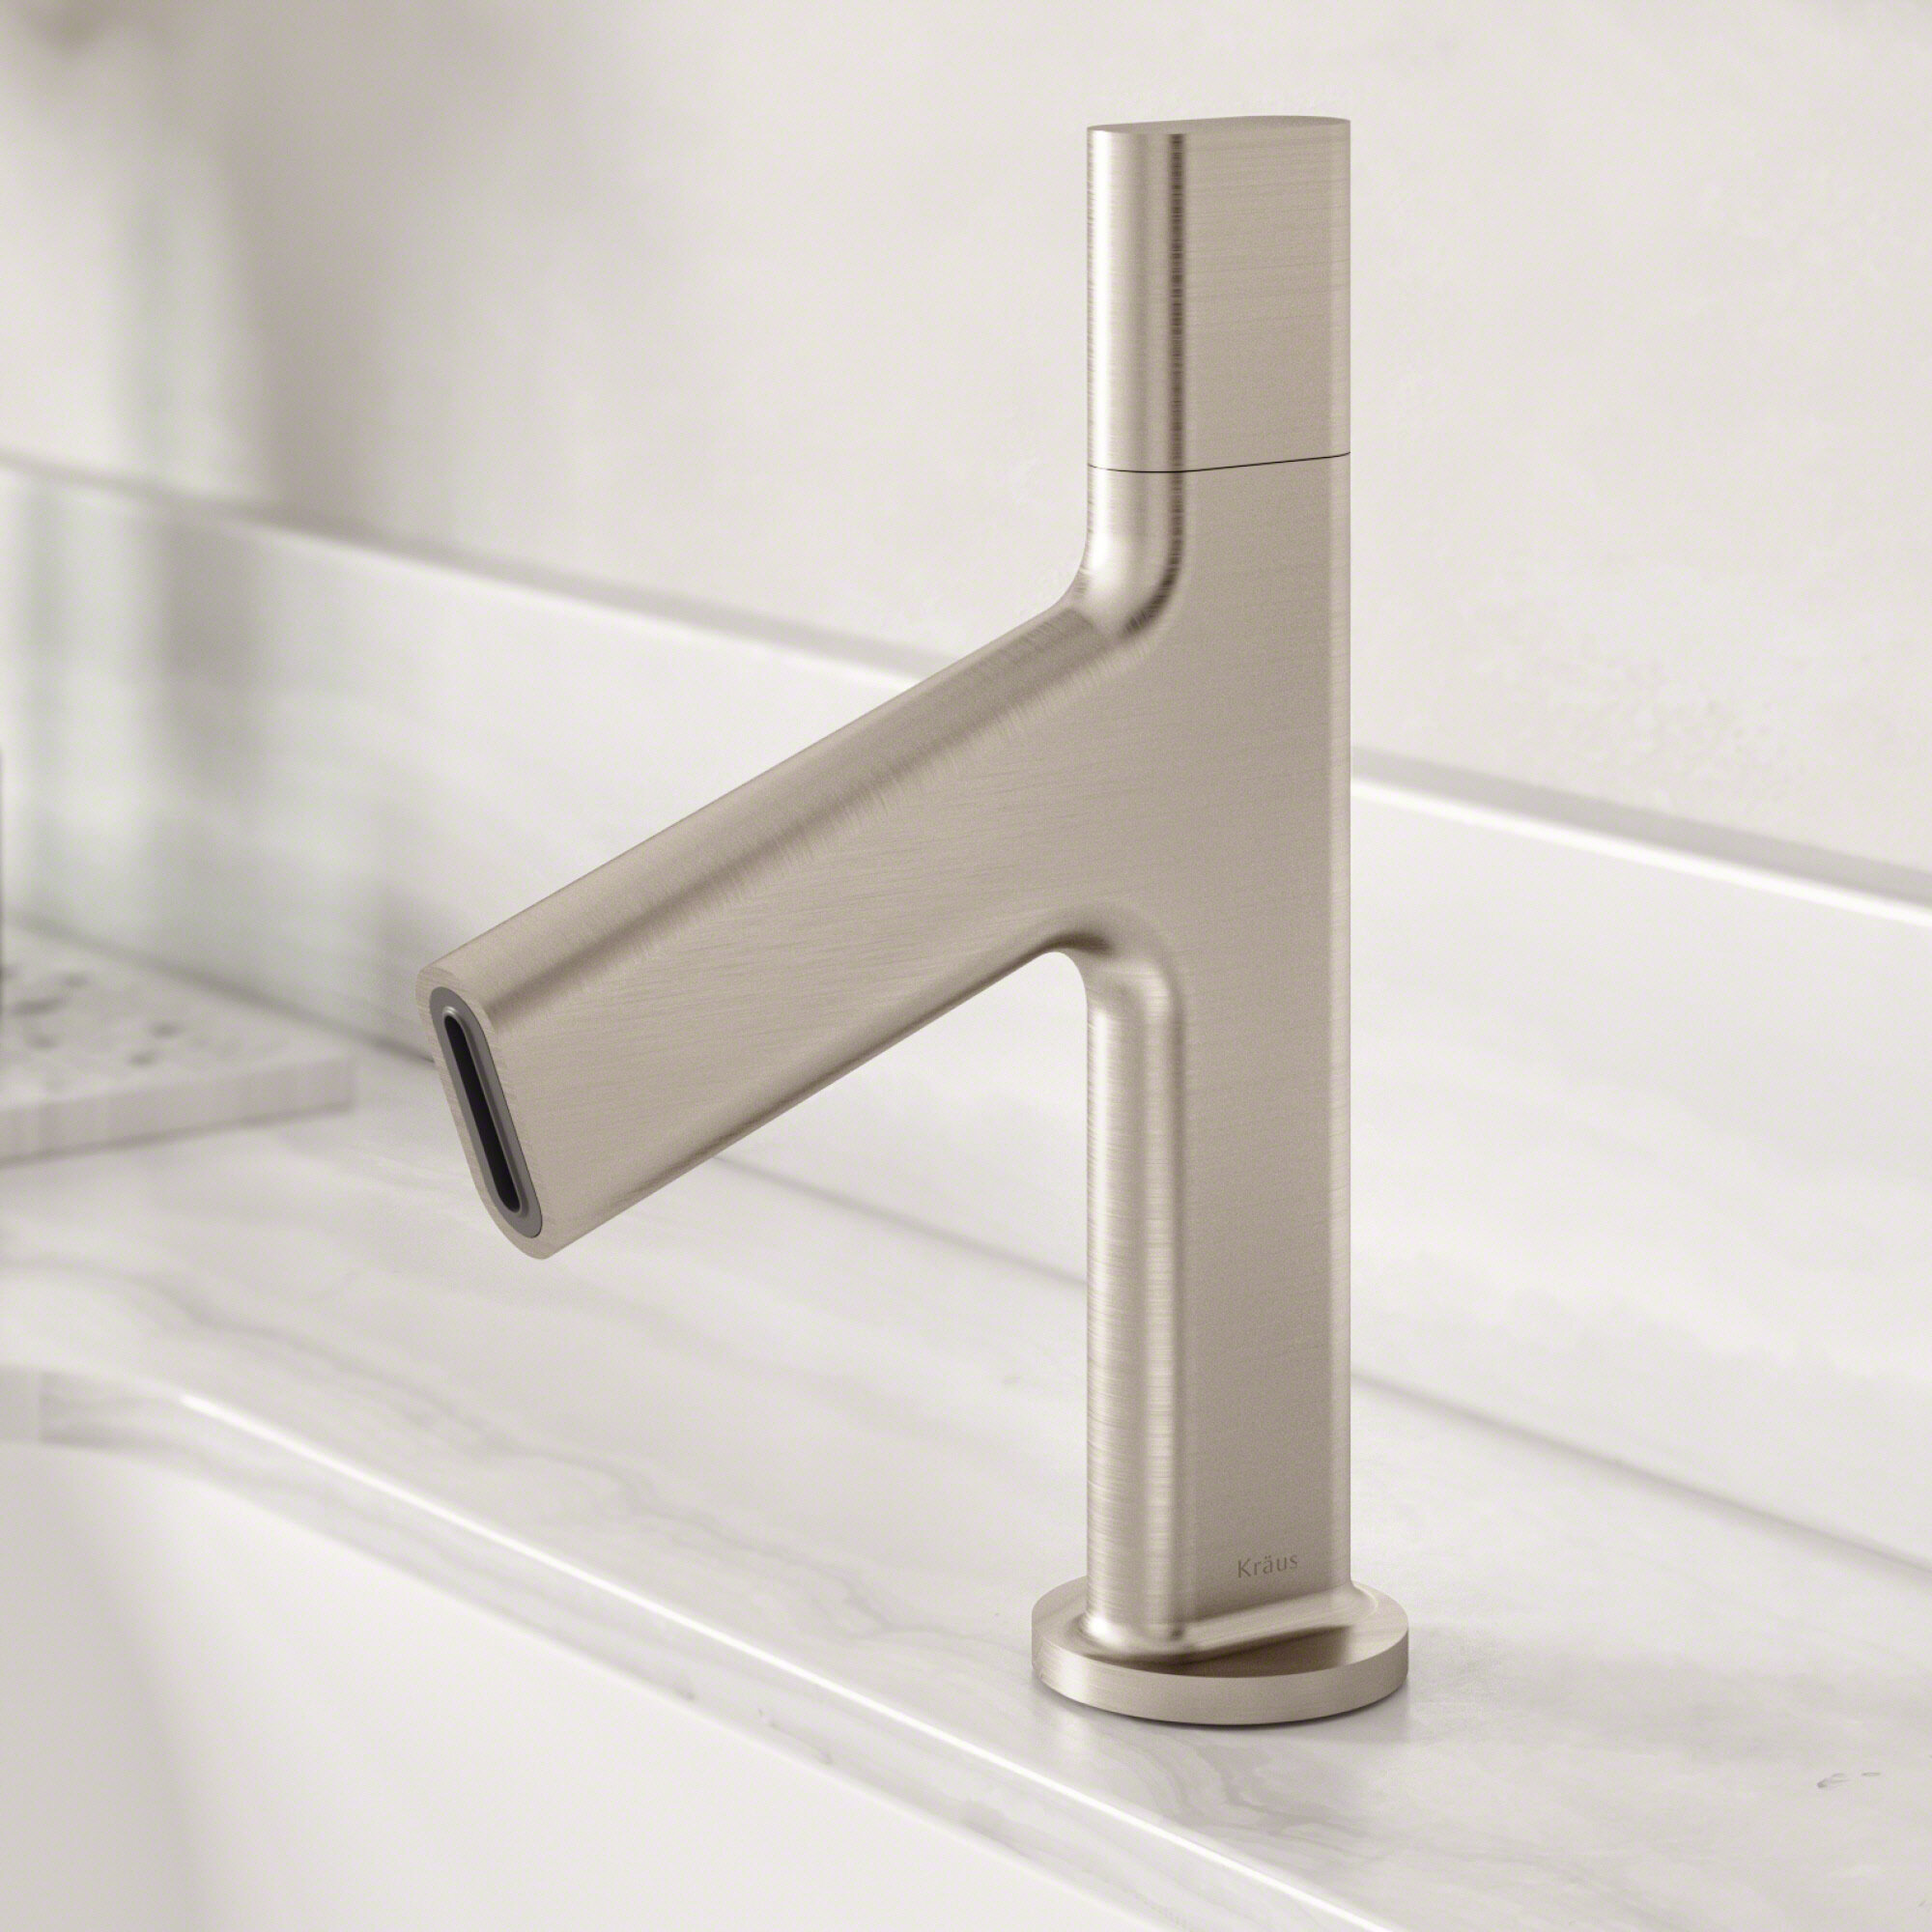 Ino Single Hole Bathroom Faucet Reviews Allmodern